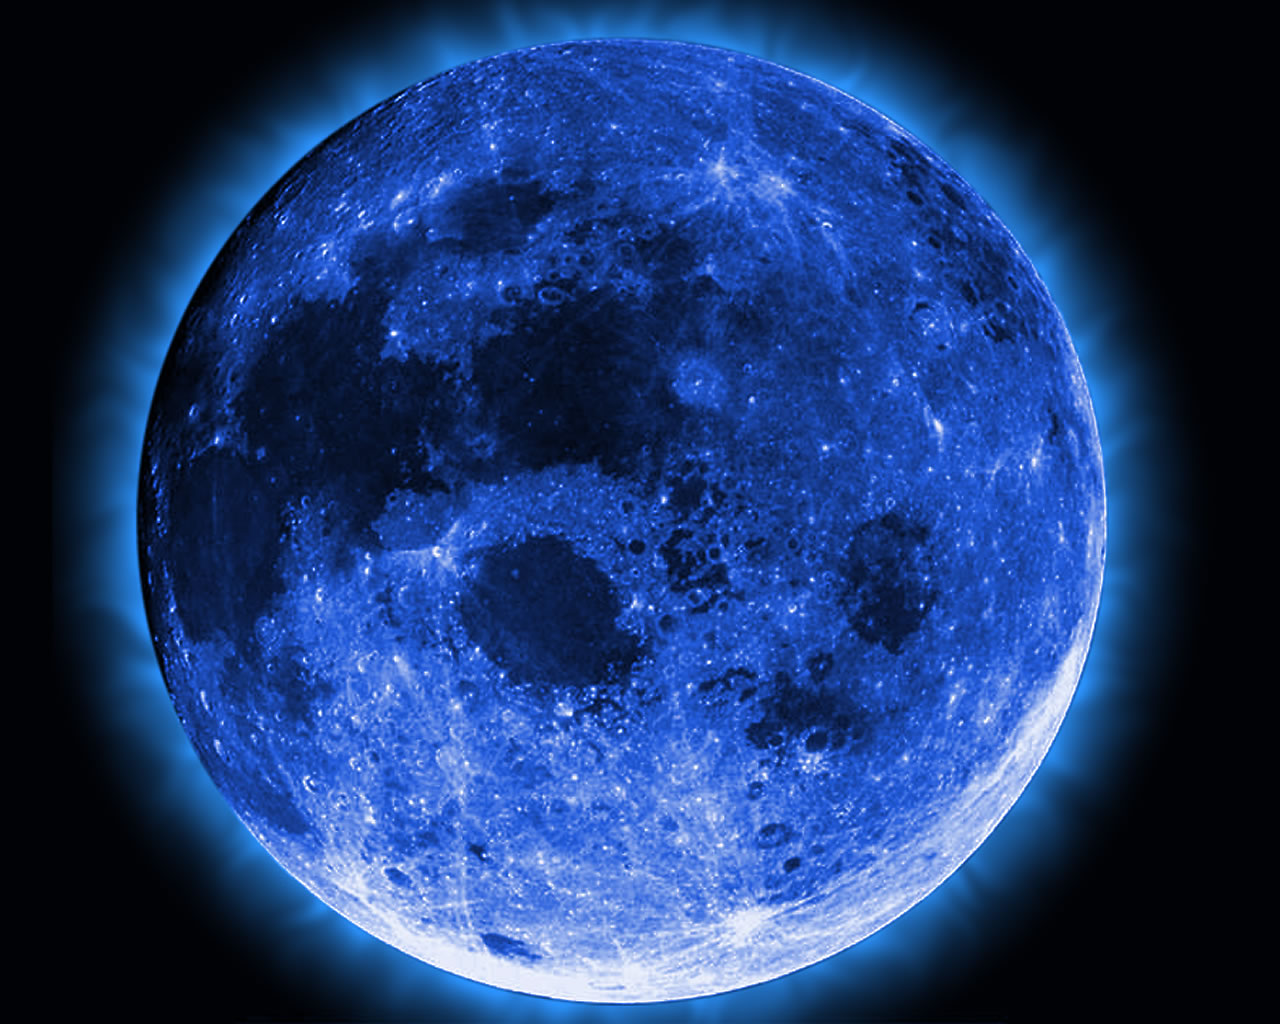 Blue Moon | Creepypasta Wiki | Fandom powered by Wikia